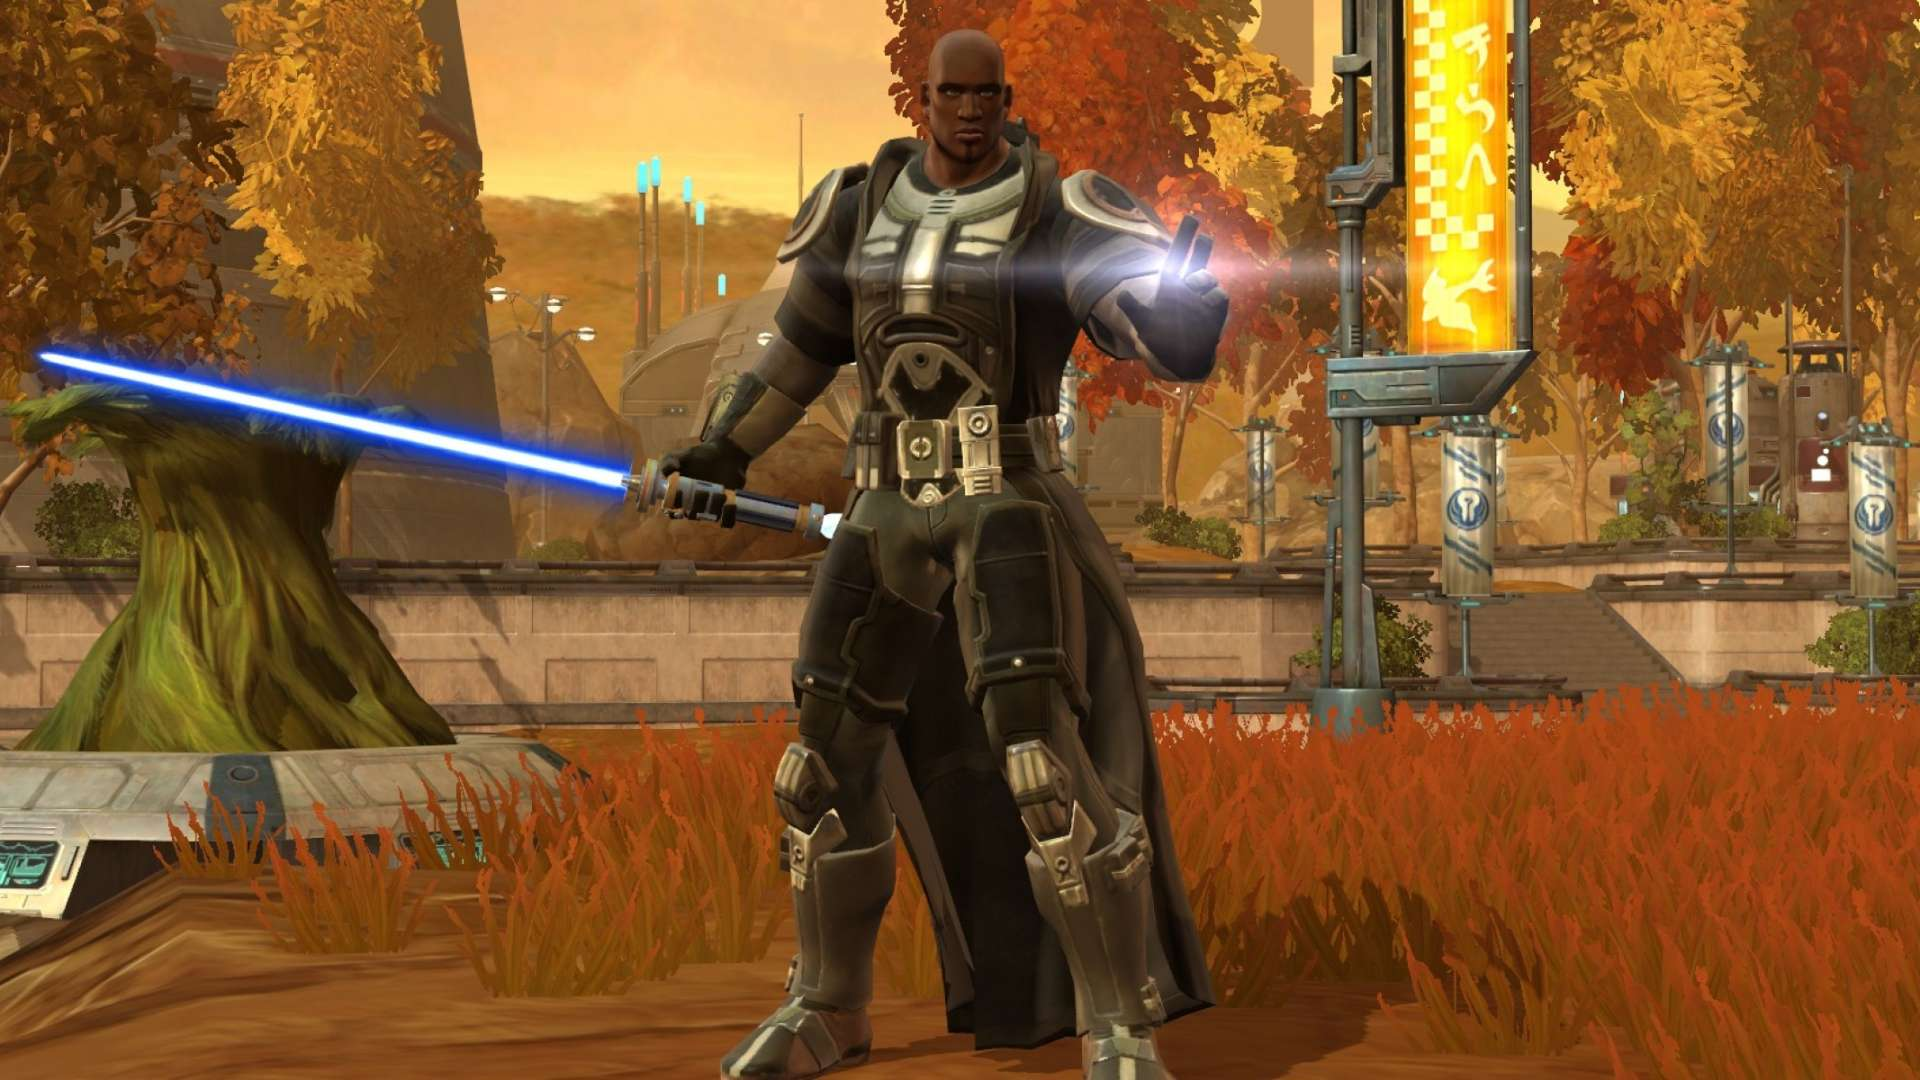 Star Wars: The Old Republic New Expansion Pack Released In September 2019